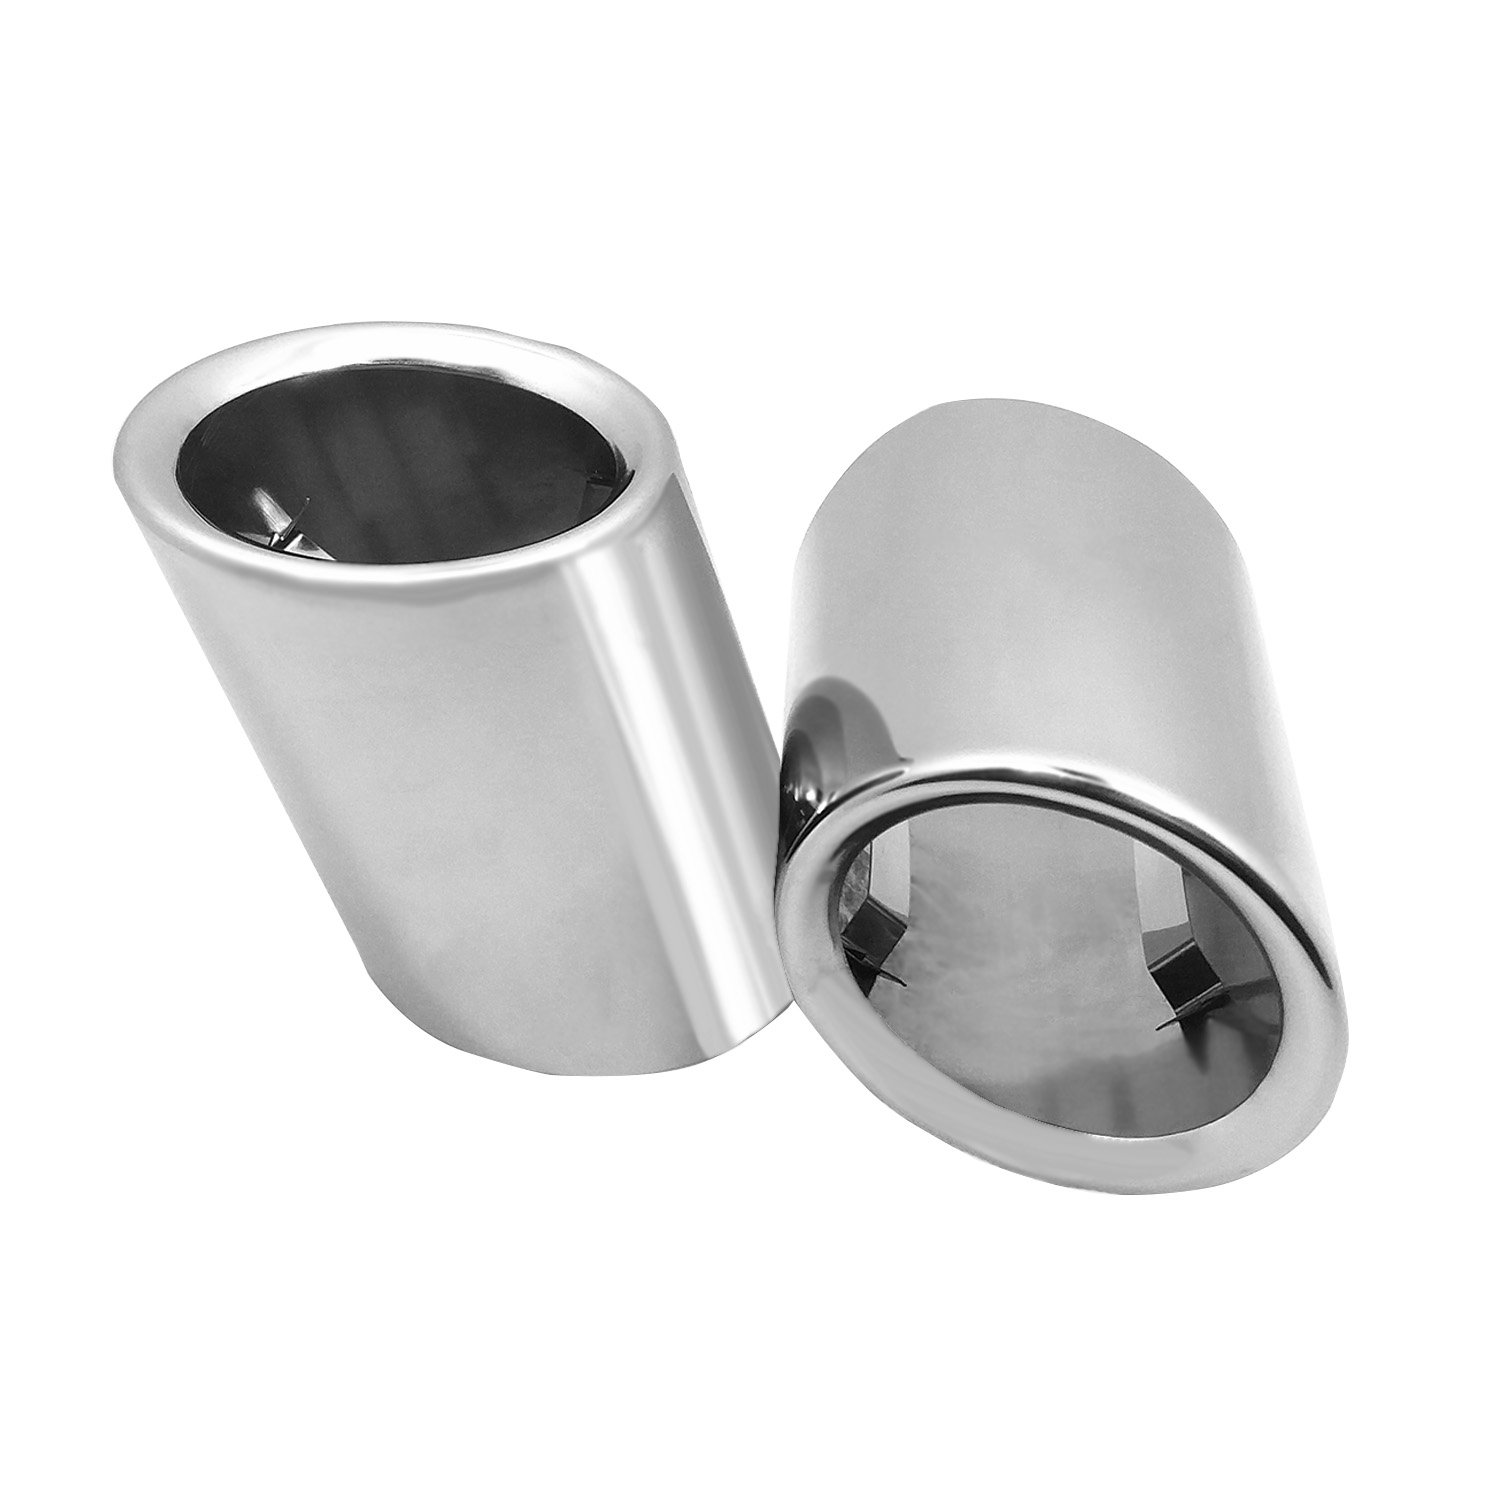 CICMOD NO SCREW Stainless Steel Chrome Exhaust Muffler End Tip Tailpipe For BMW 325 E46 2012-2014 (pack of 2)